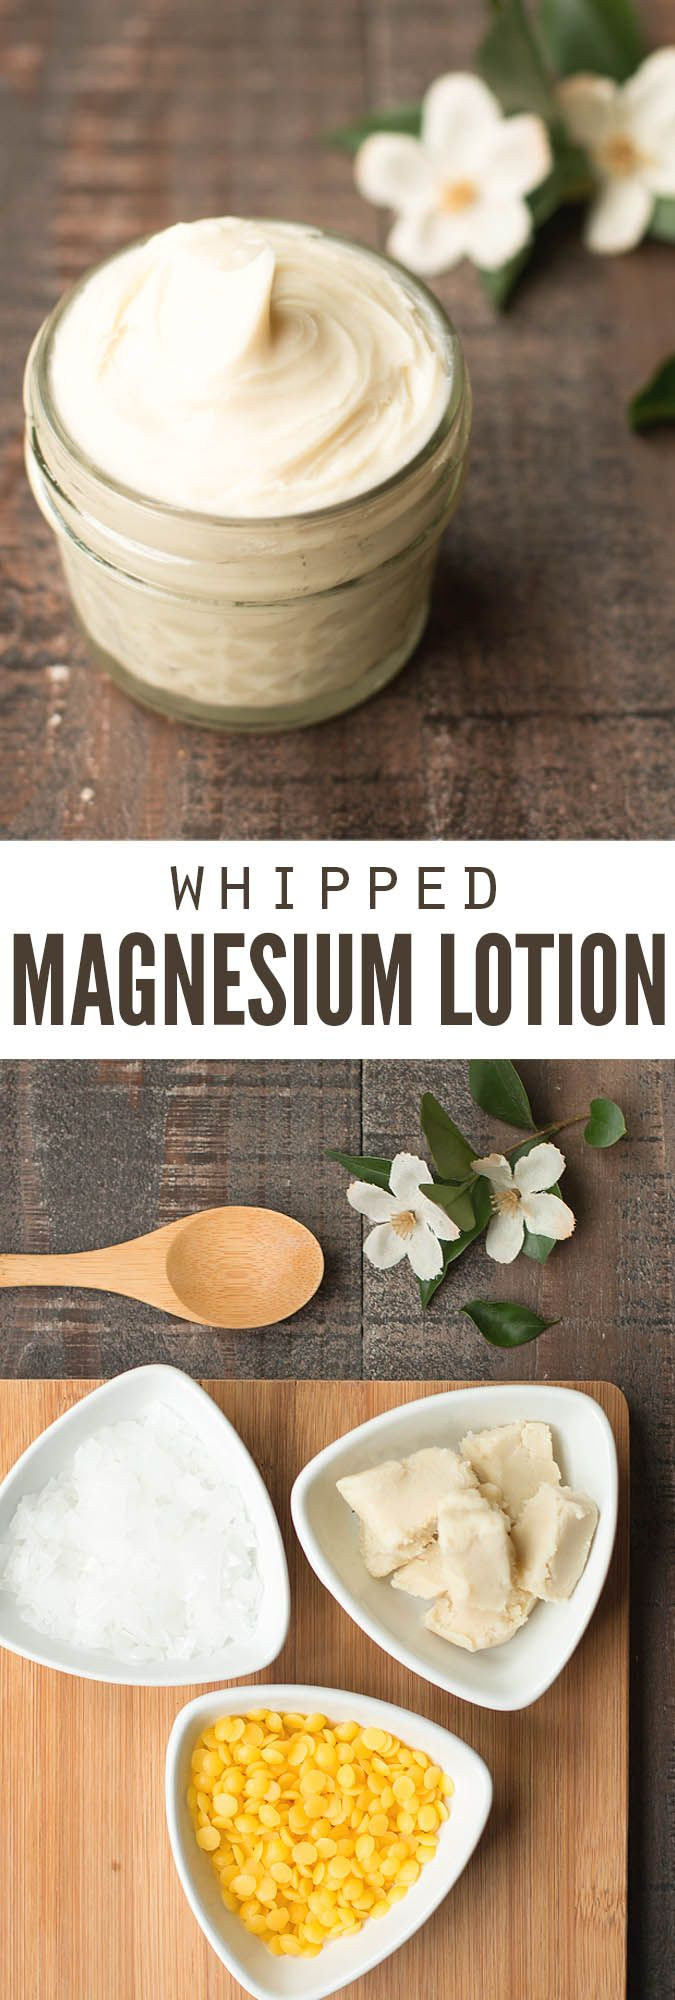 This magnesium lotion is a miracle worker. I sleep better, have less anxiety and I'm happier to be around too! The recipe is incredibly easy and ready in just 15 minutes! :: DontWastetheCrumbs.com